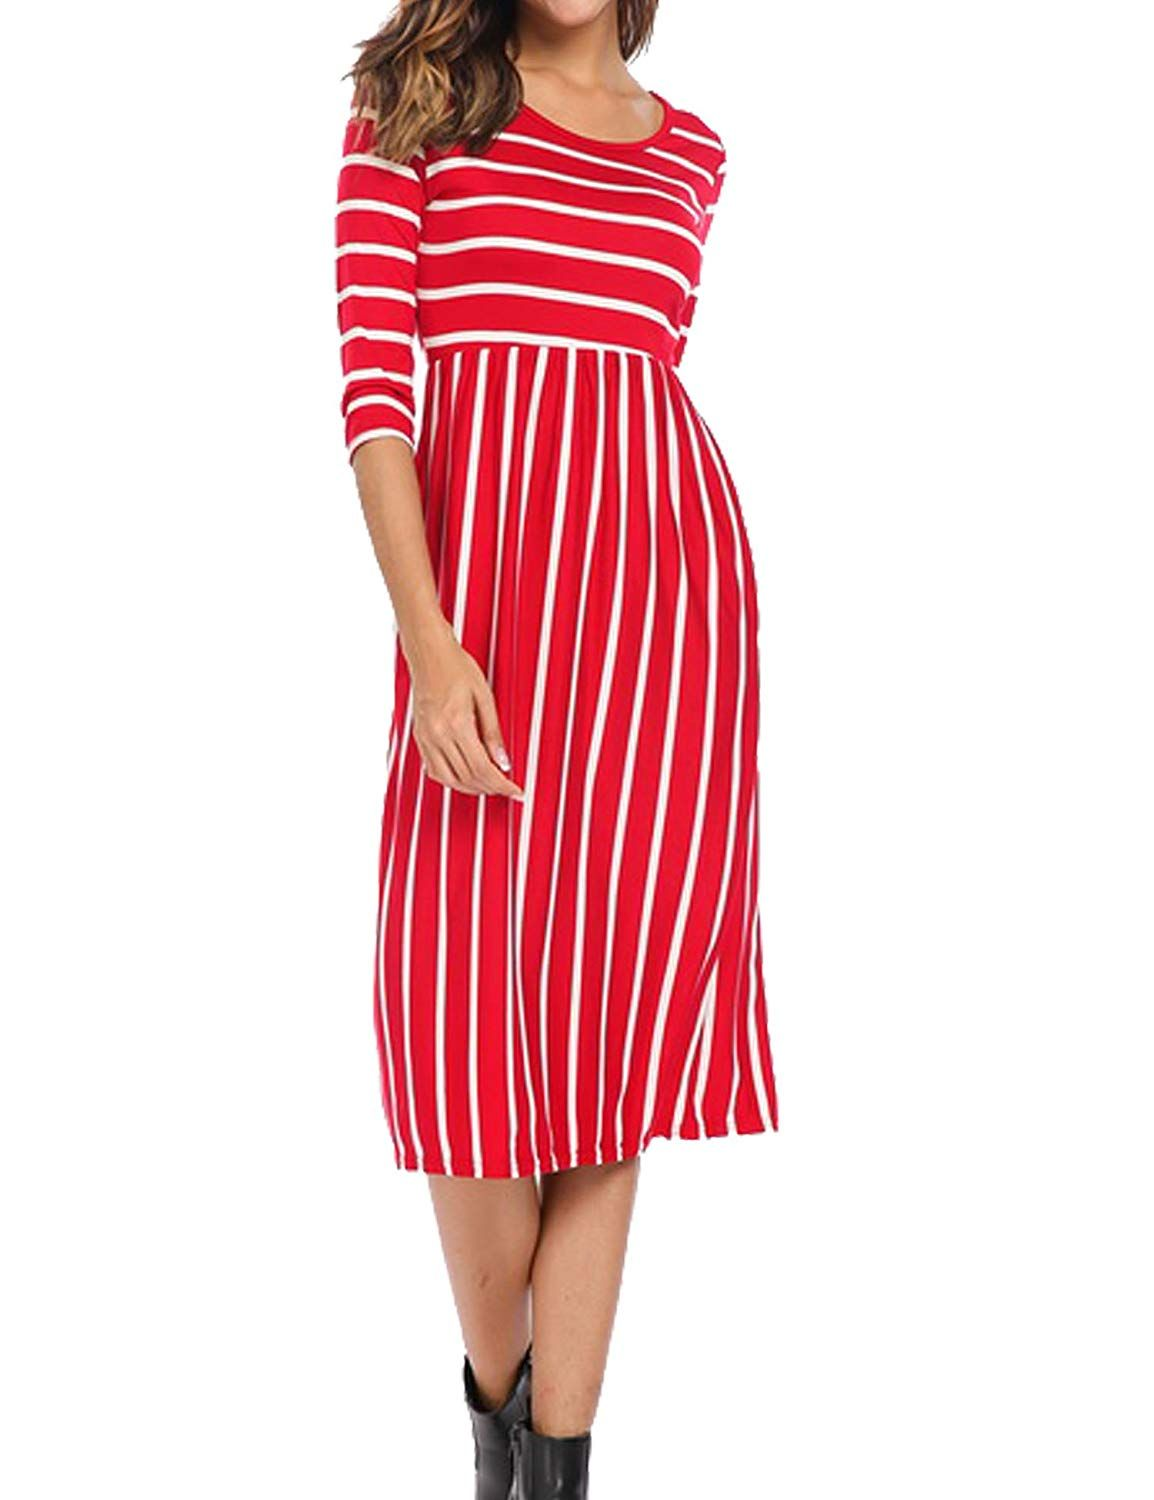 Halife Women S 3 4 Sleeve Stripe Elastic Waist Casual Dress With Pocket At Amazon Women S Clothing Store Striped Dress Outfit Casual Dress Maxi Dress Party [ 1500 x 1154 Pixel ]